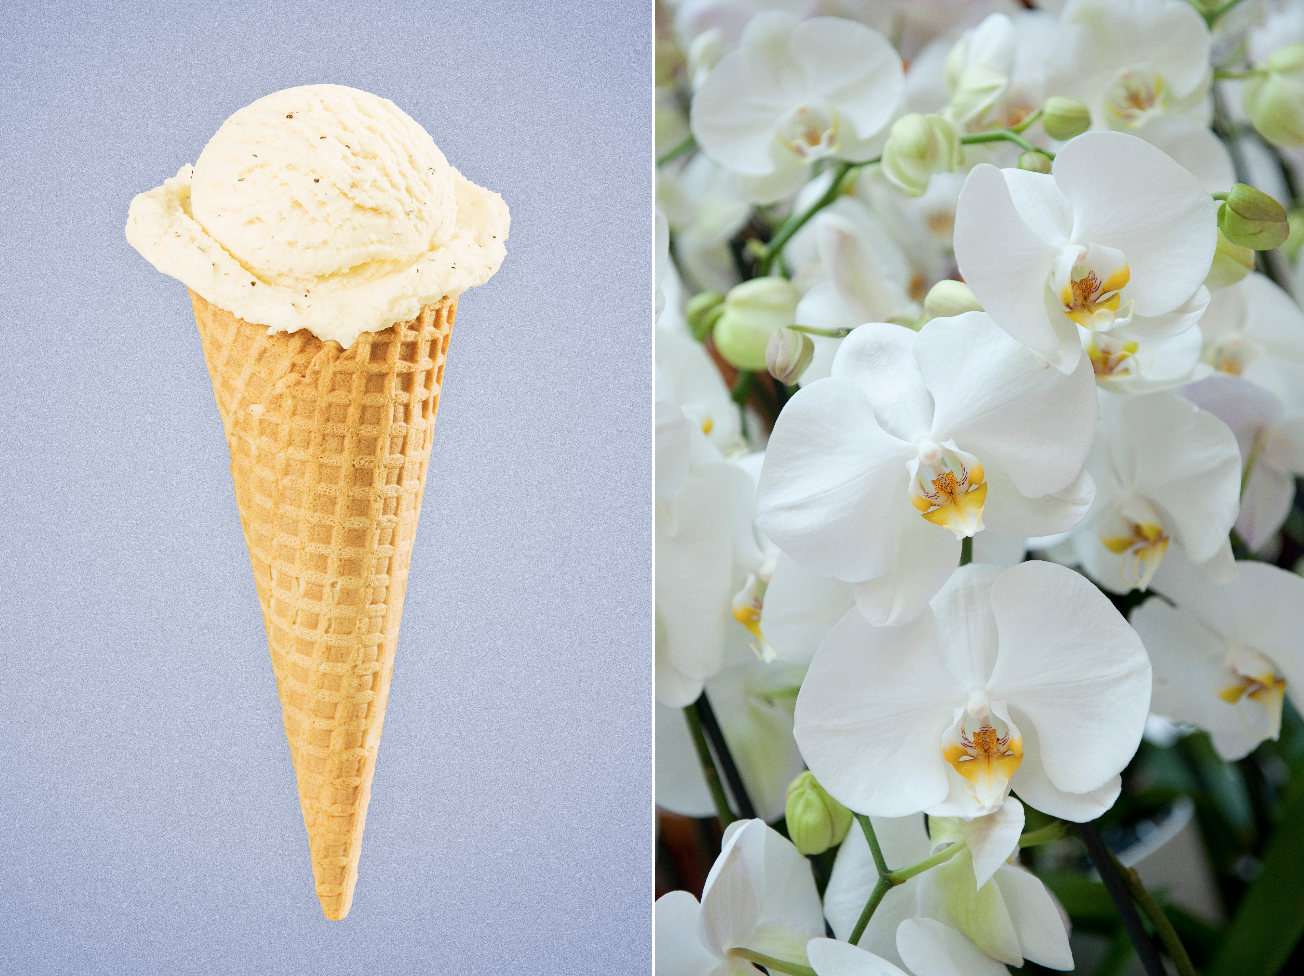 Wait—Am I the Only One Who Didn't Know Vanilla Comes from Orchids?